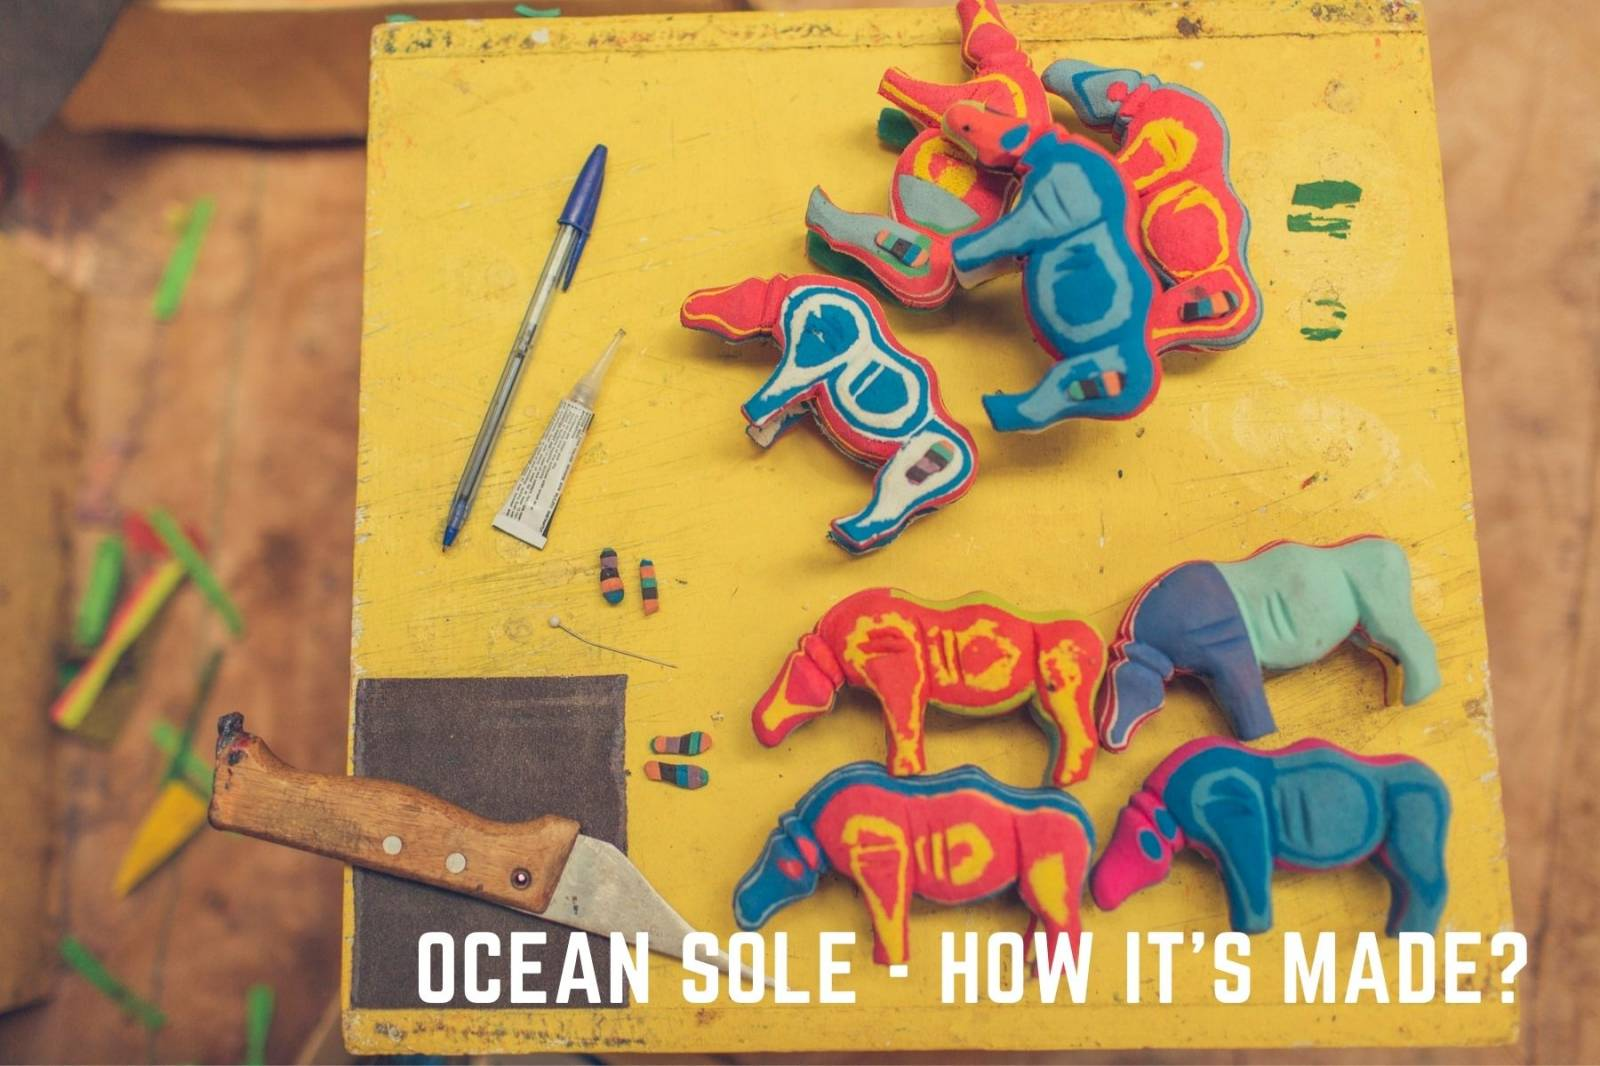 Ocean Sole - how it's made?